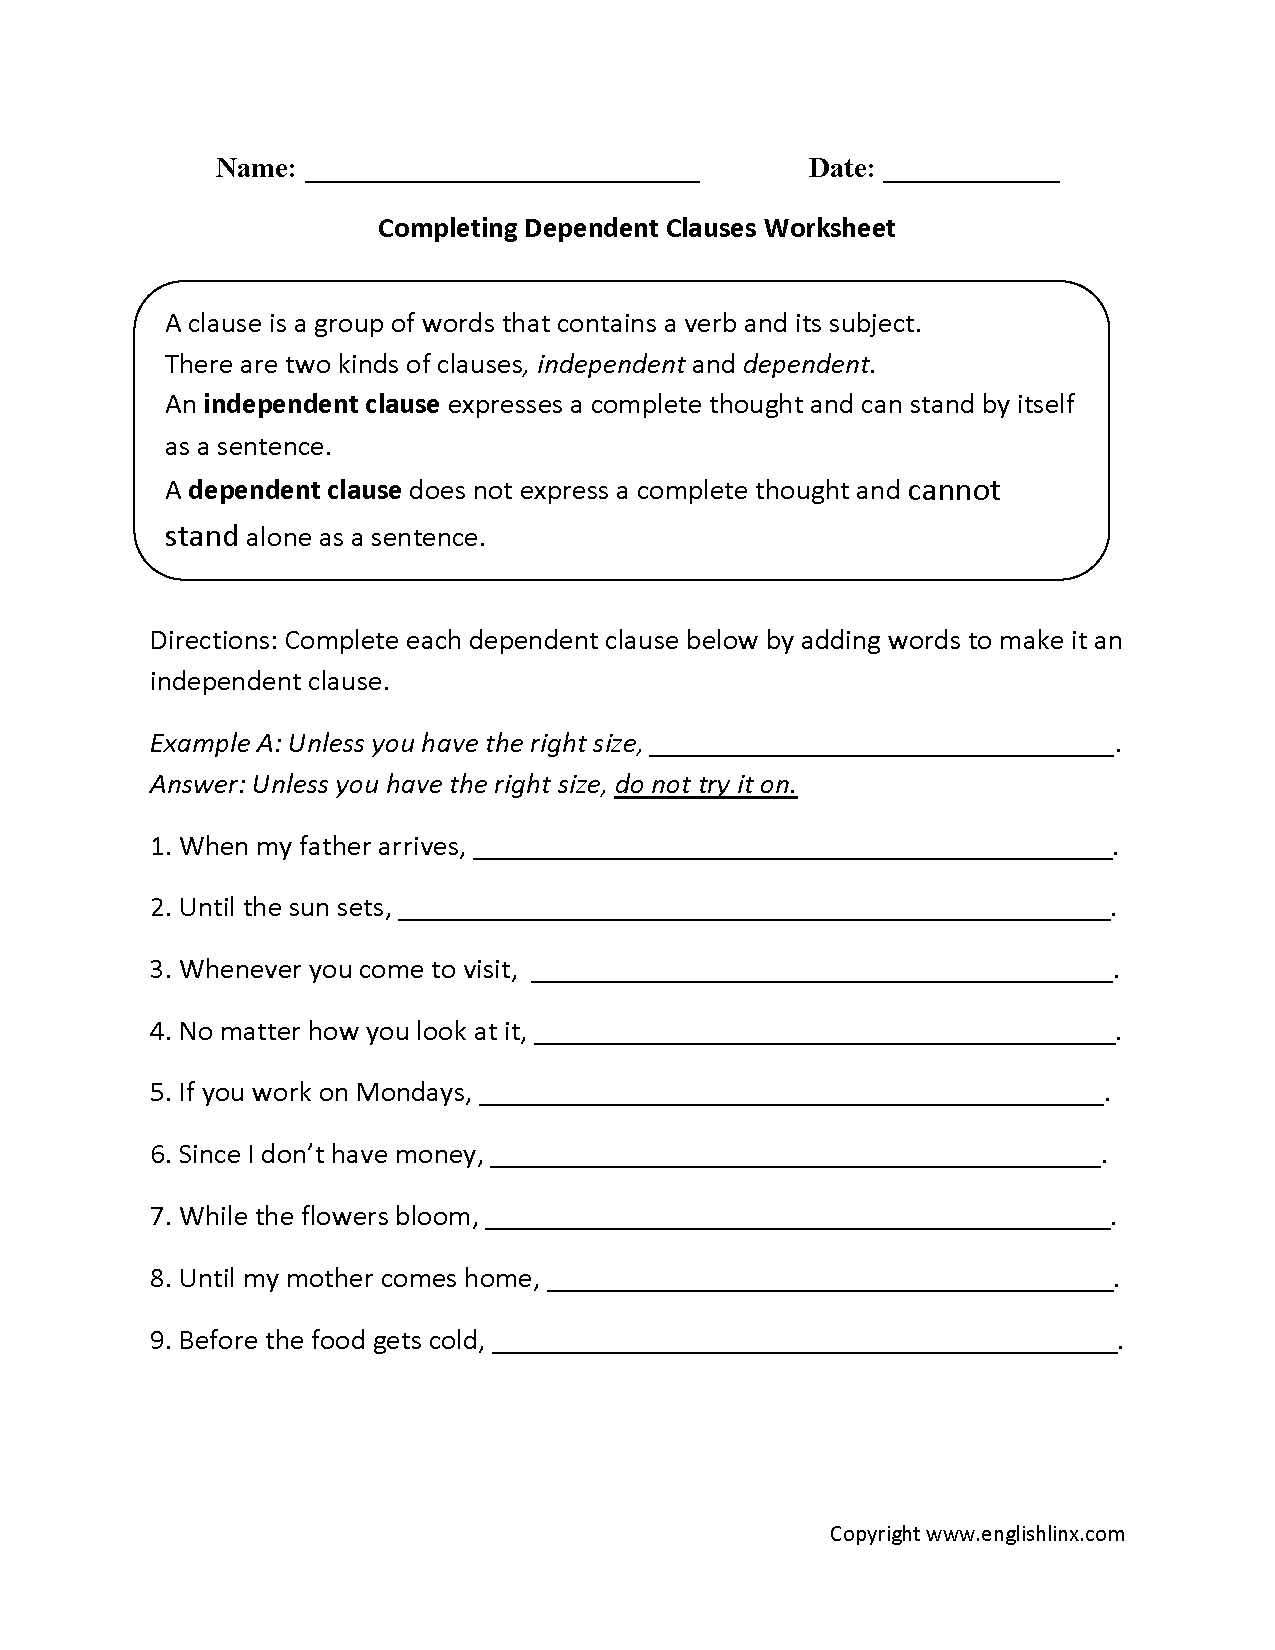 Englishlinx – Independent and Dependent Clauses Worksheets